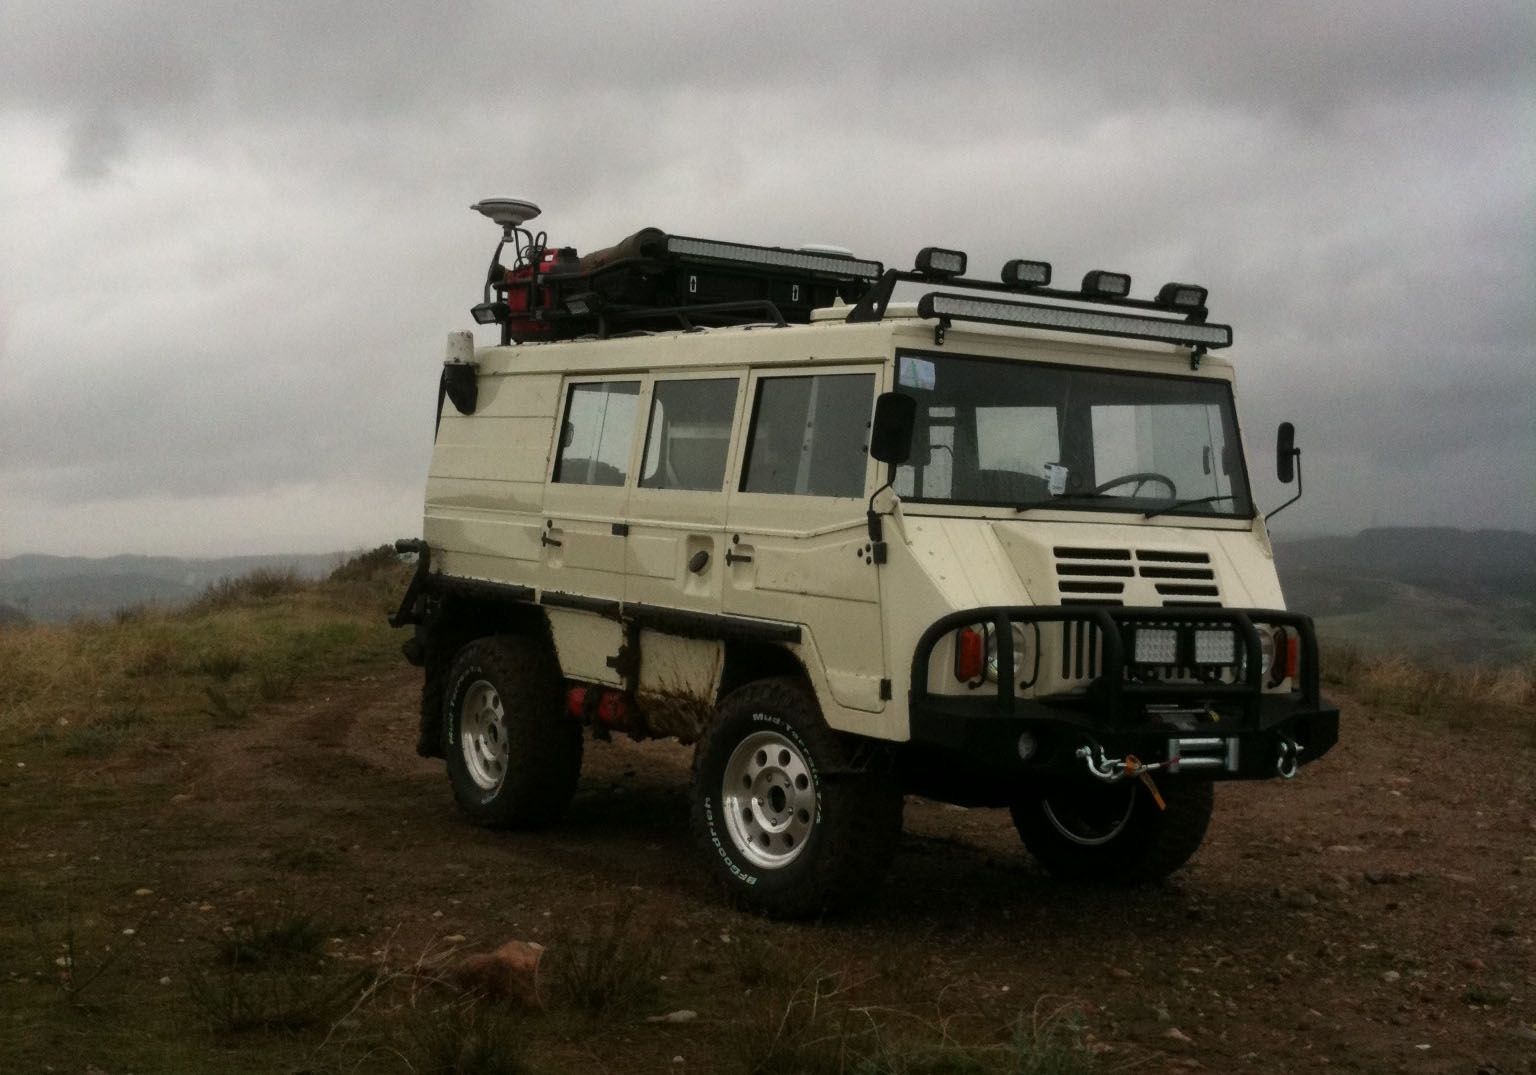 The Pinzgauer from Thor a personal favorite